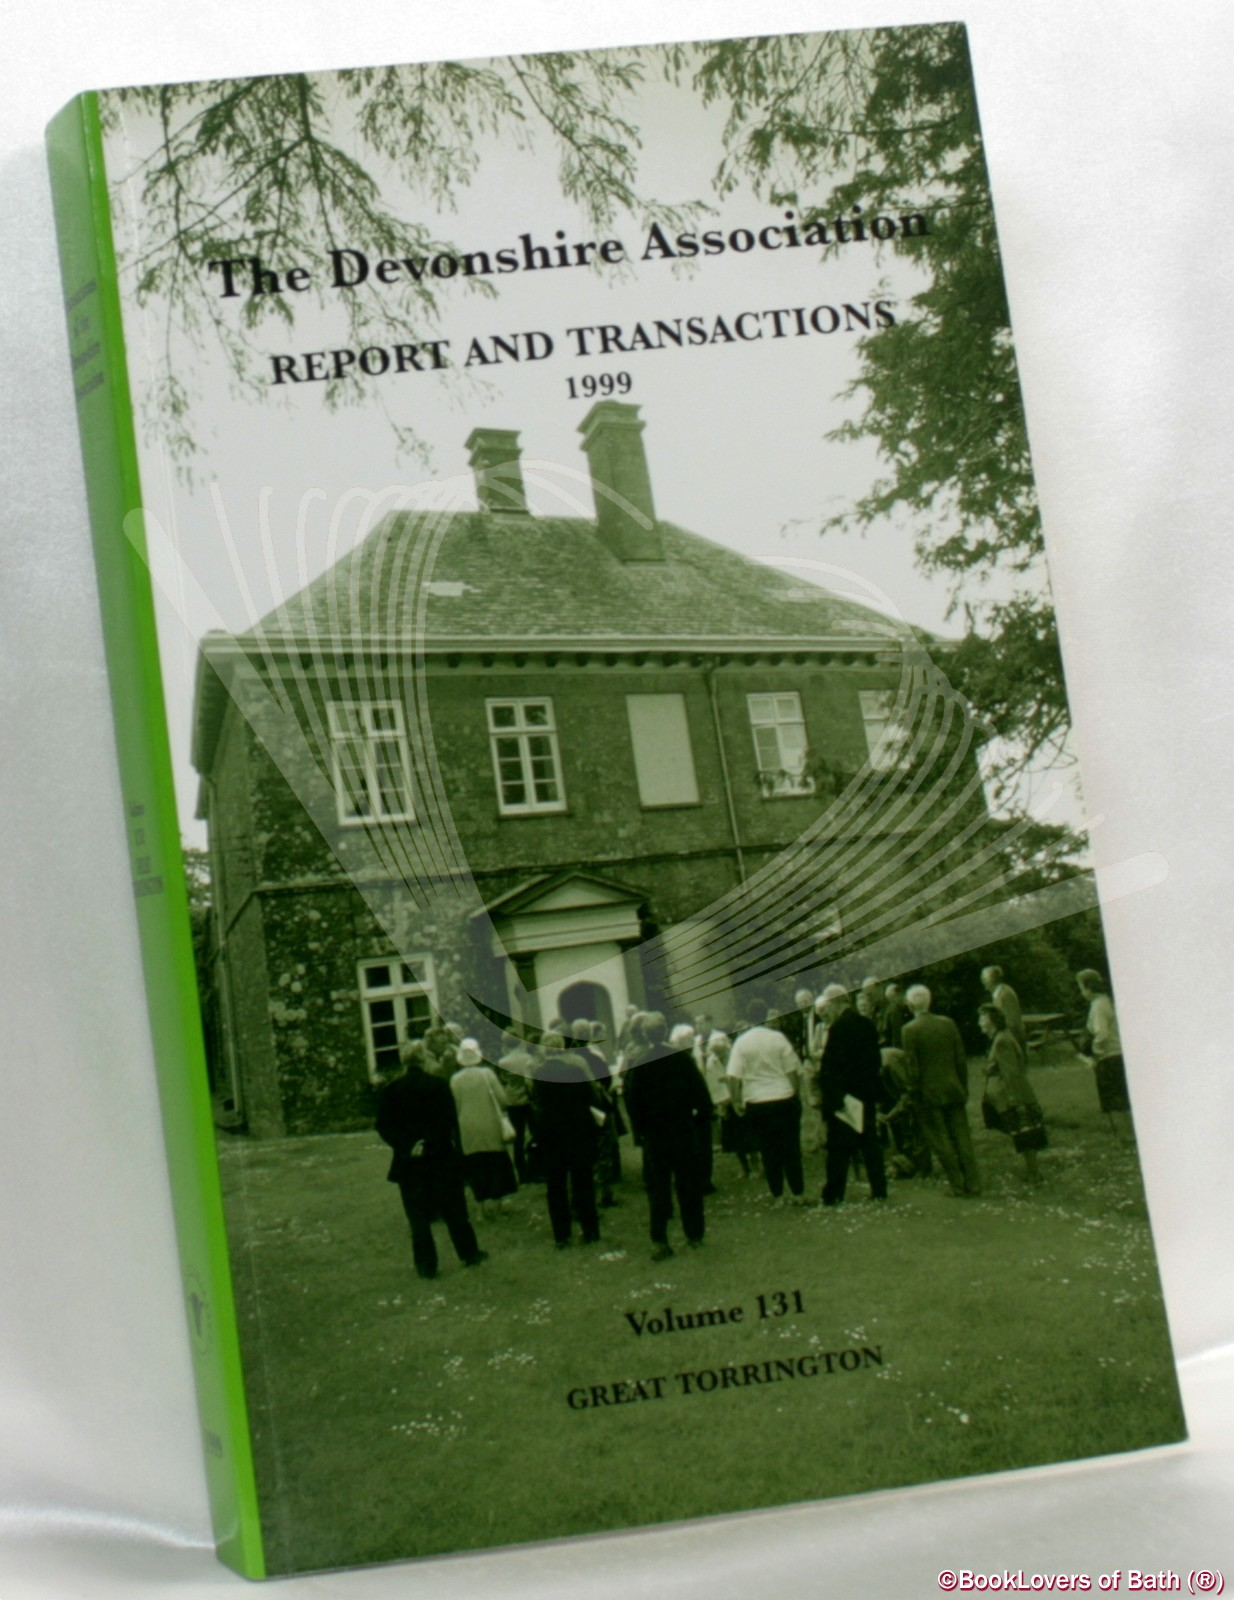 The Devonshire Association for the Advancement of Science, Literature and Art: Reports & Transactions Volume 131 Great Torrington - Anon.